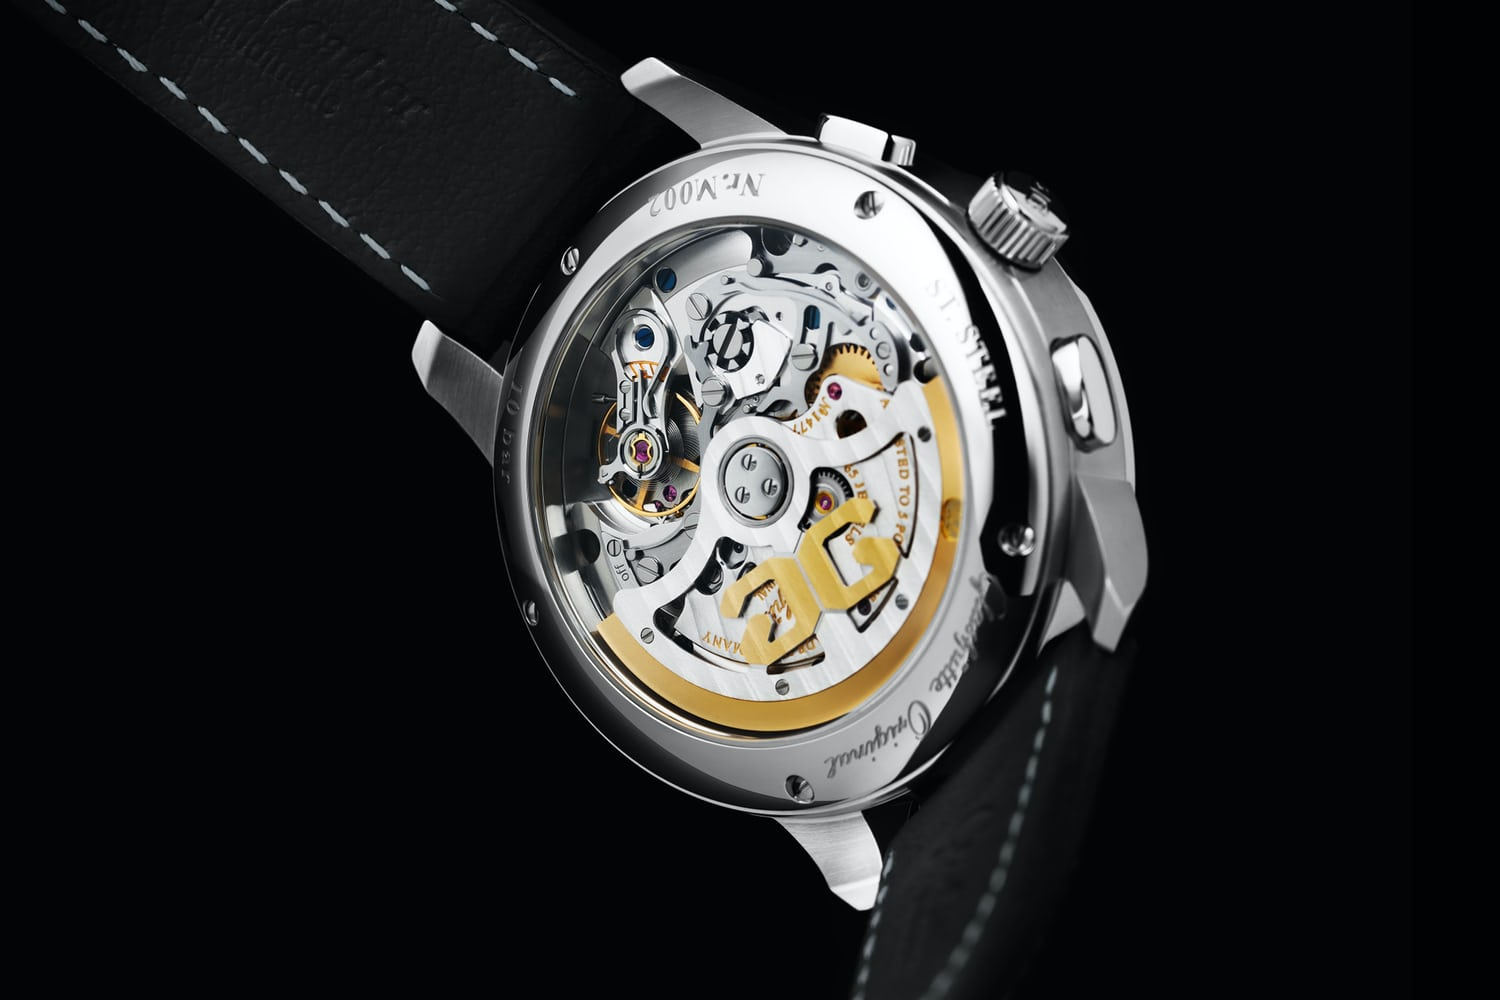 glashutte_chrono_03.jpg?ixlib=rails-1.1.